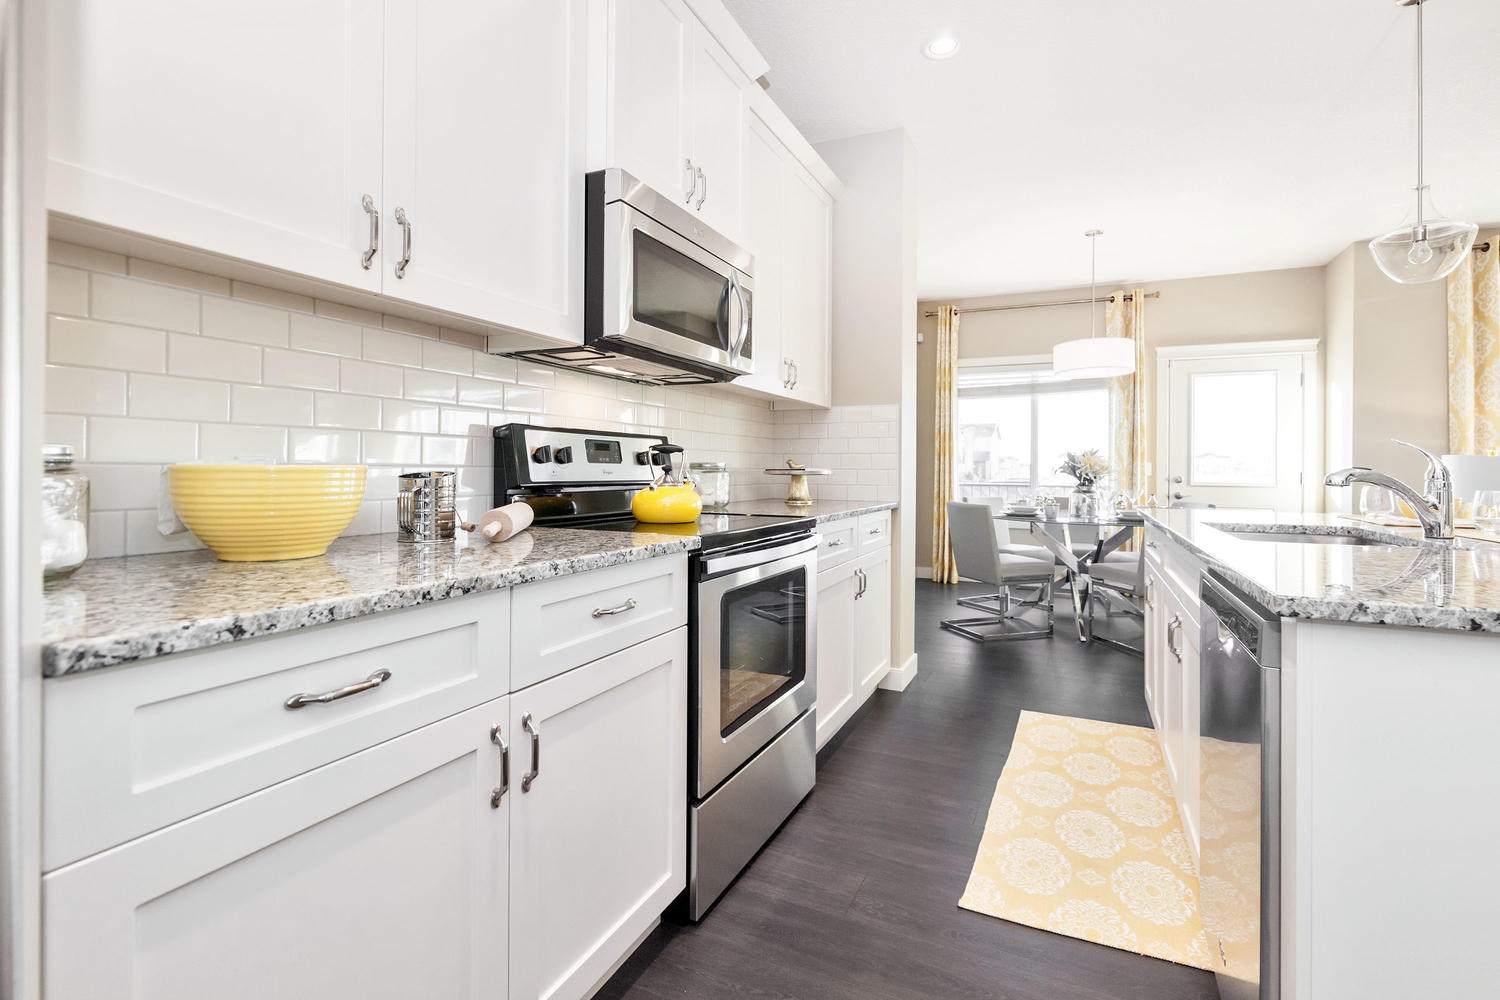 open concept kitchens with white cupboards and yellow accent in pacesetter front drive show home.